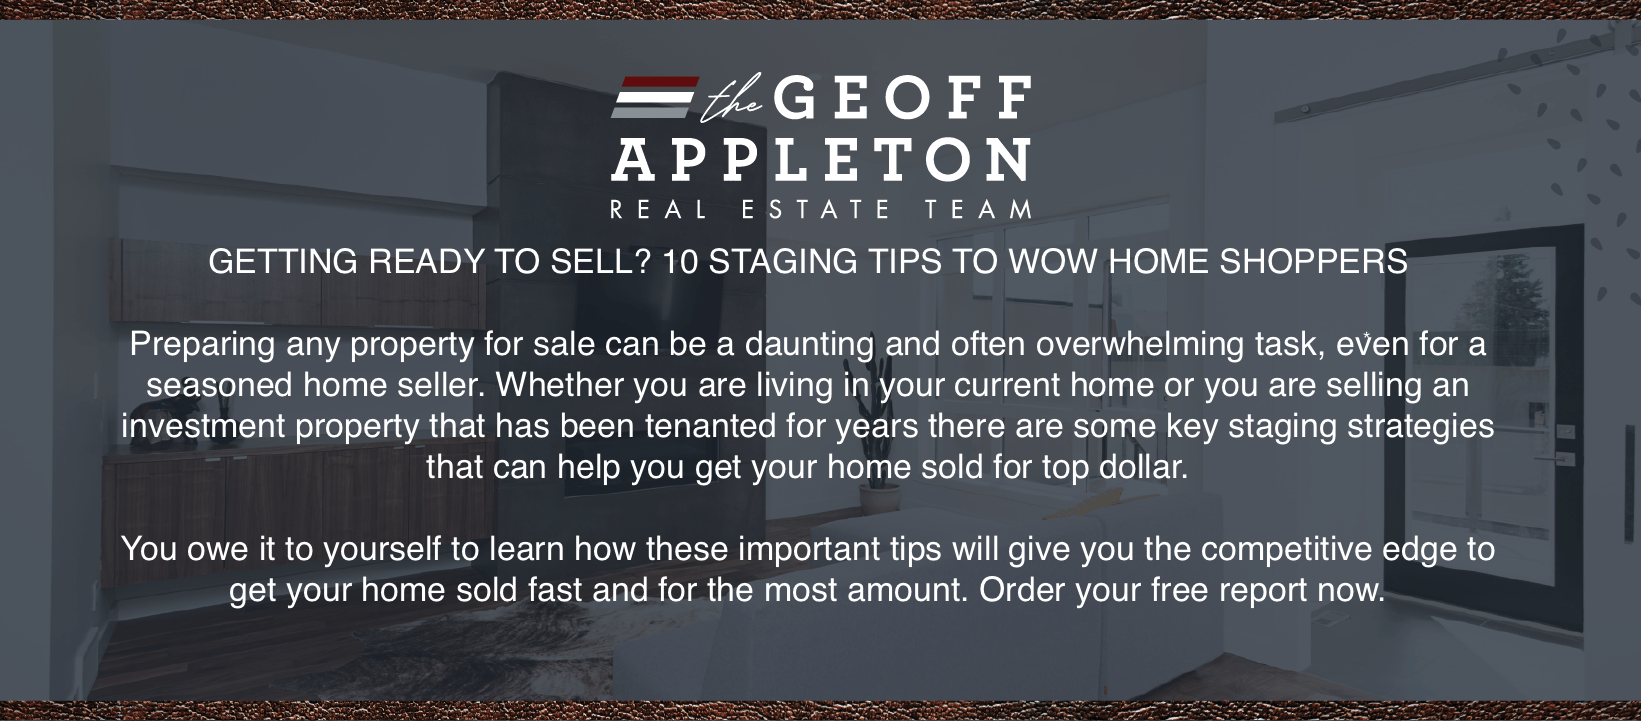 Staging tips website image.png